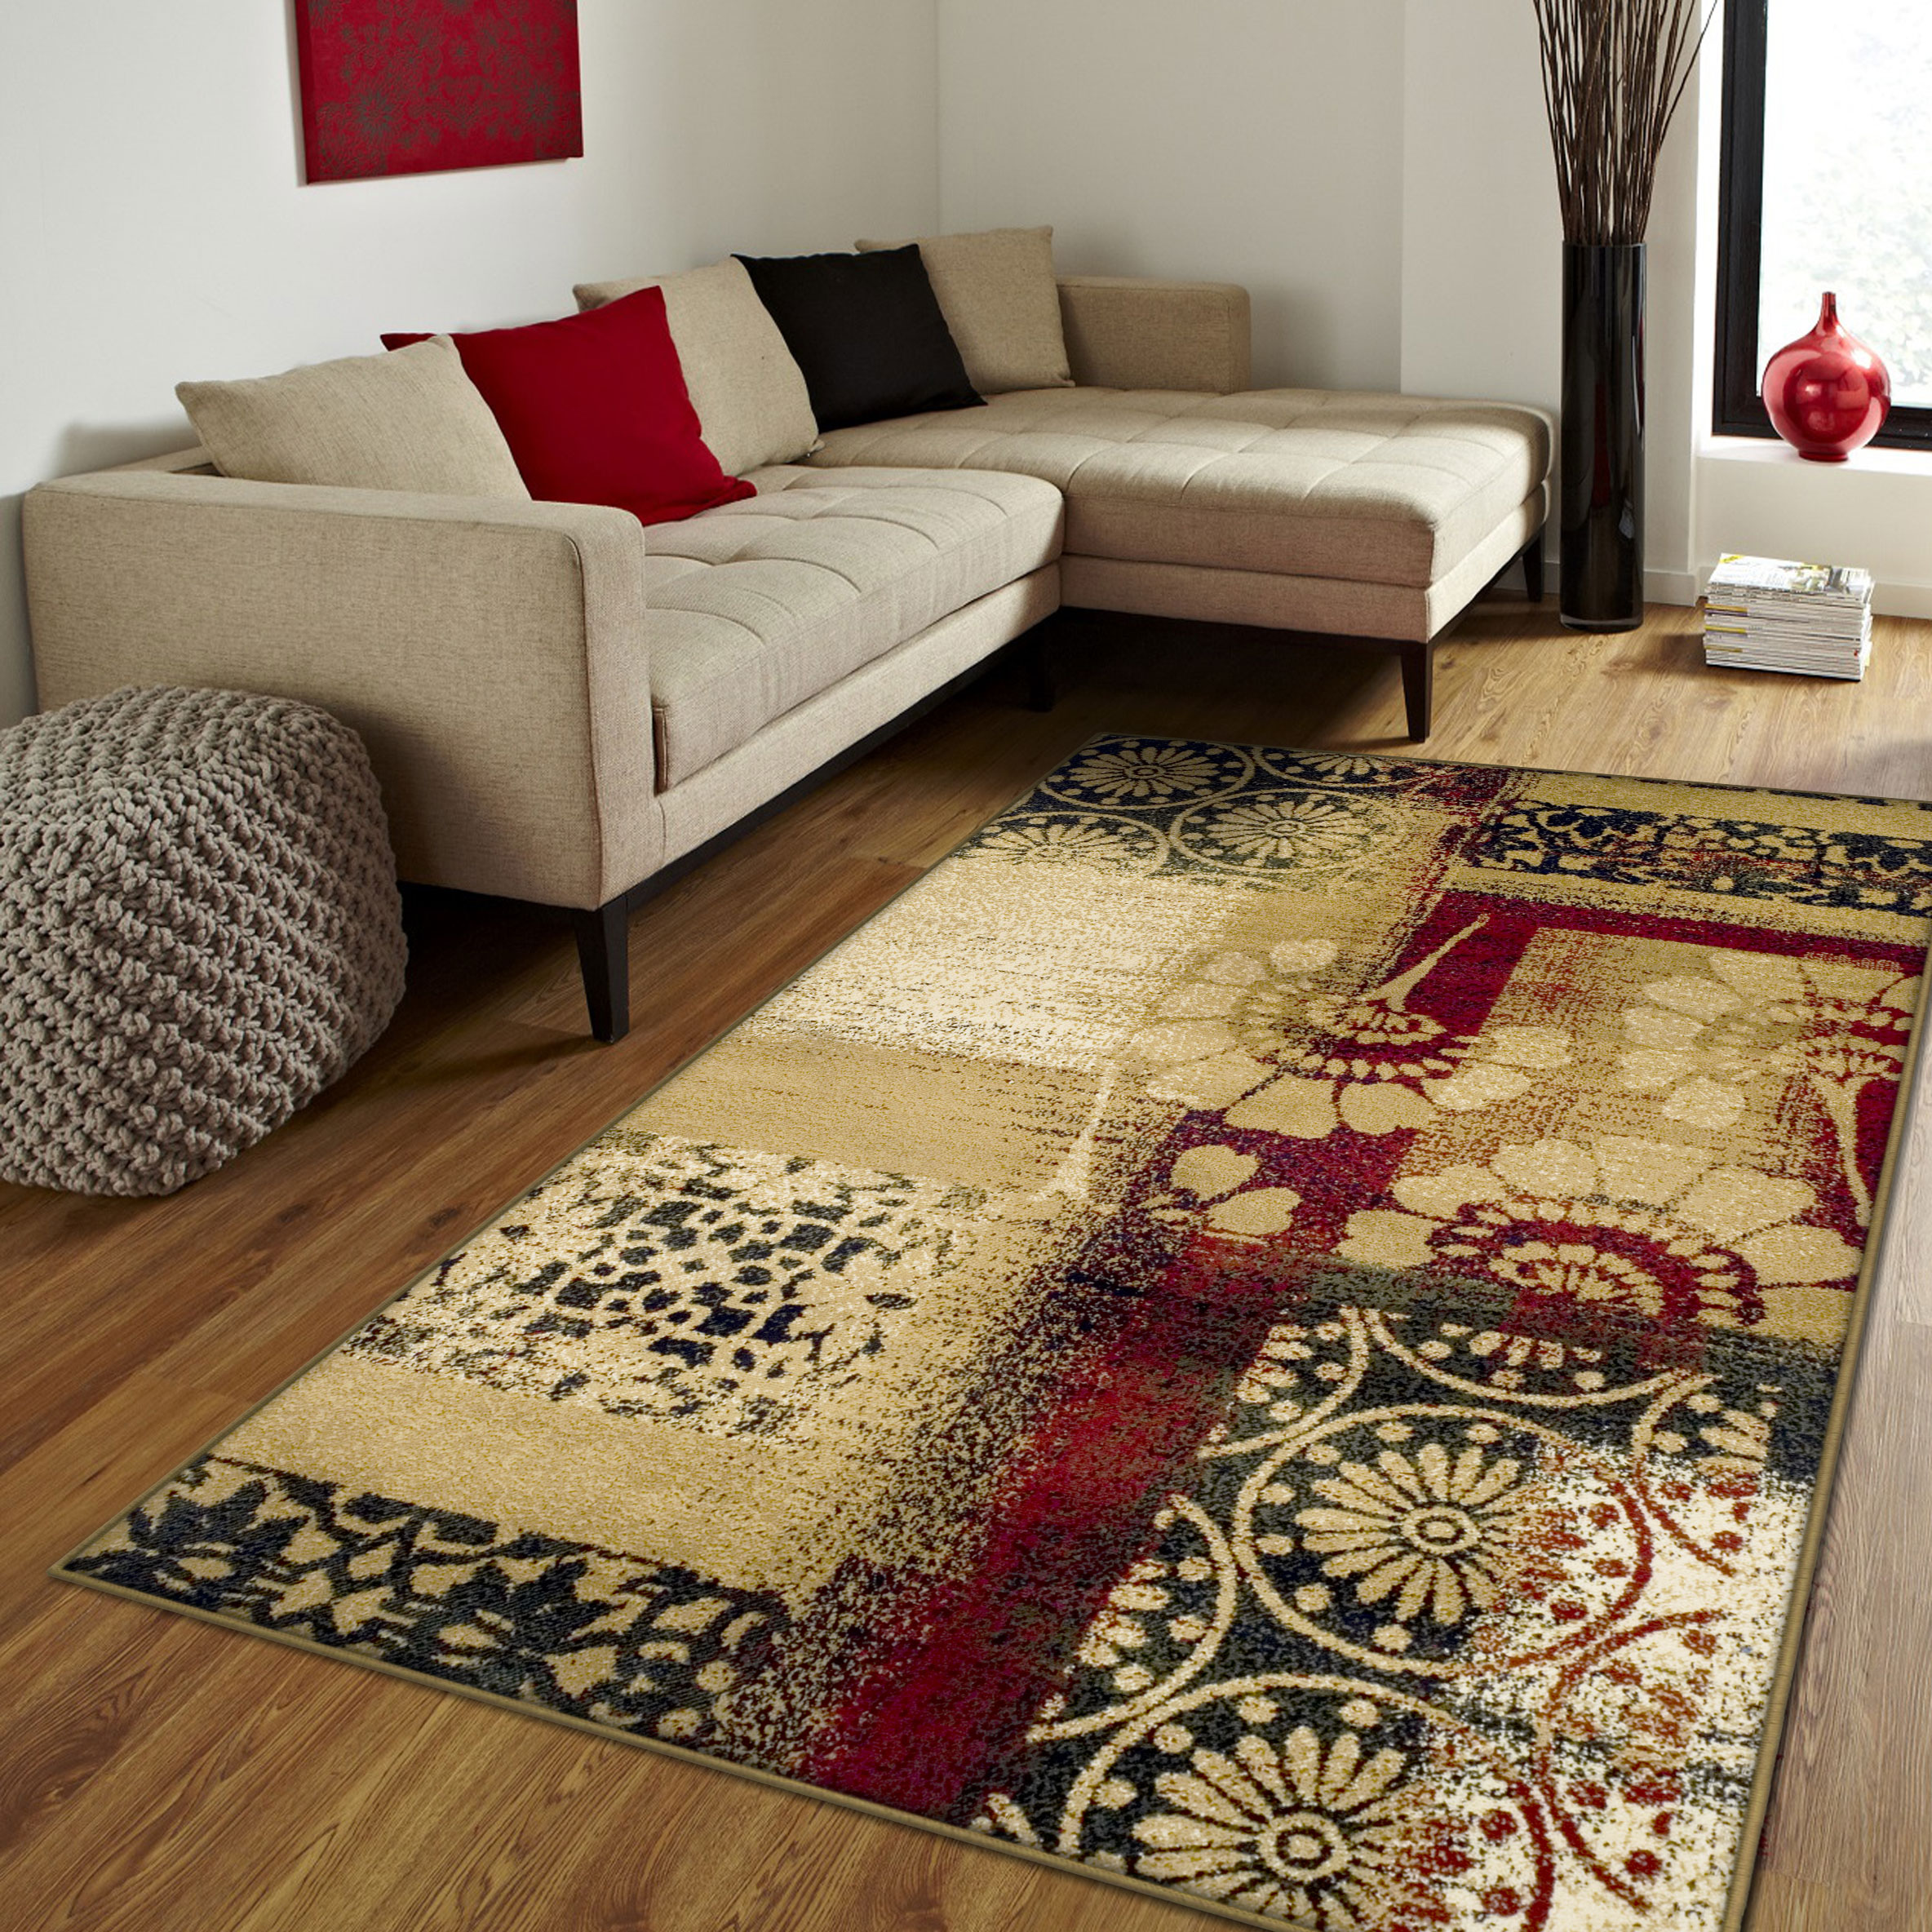 Superior Floral and Geometric Patchwork Design, 10mm Pile with Jute Backing, Affordable Contemporary Patchwork Collection Area Rug, Multi Color